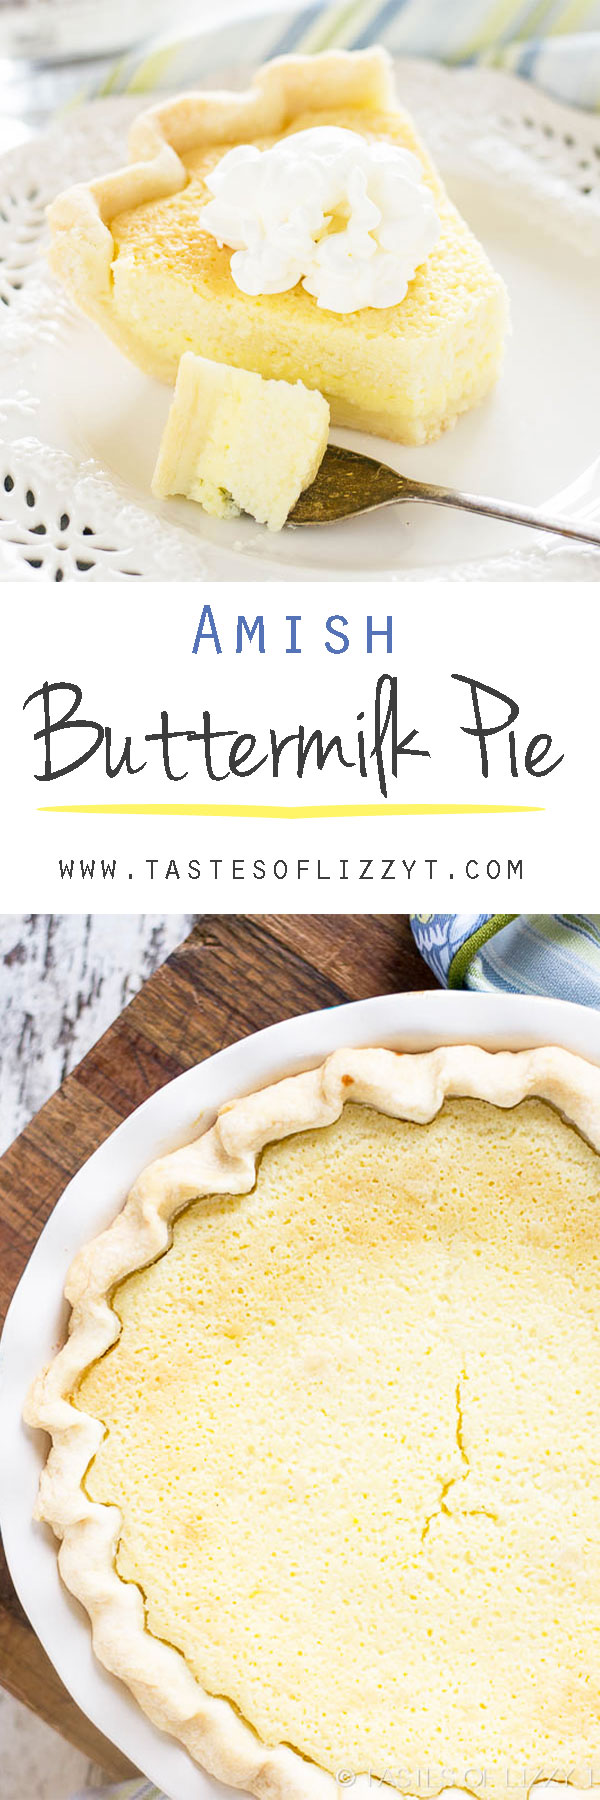 This smooth custard like amish buttermilk pie is a unique